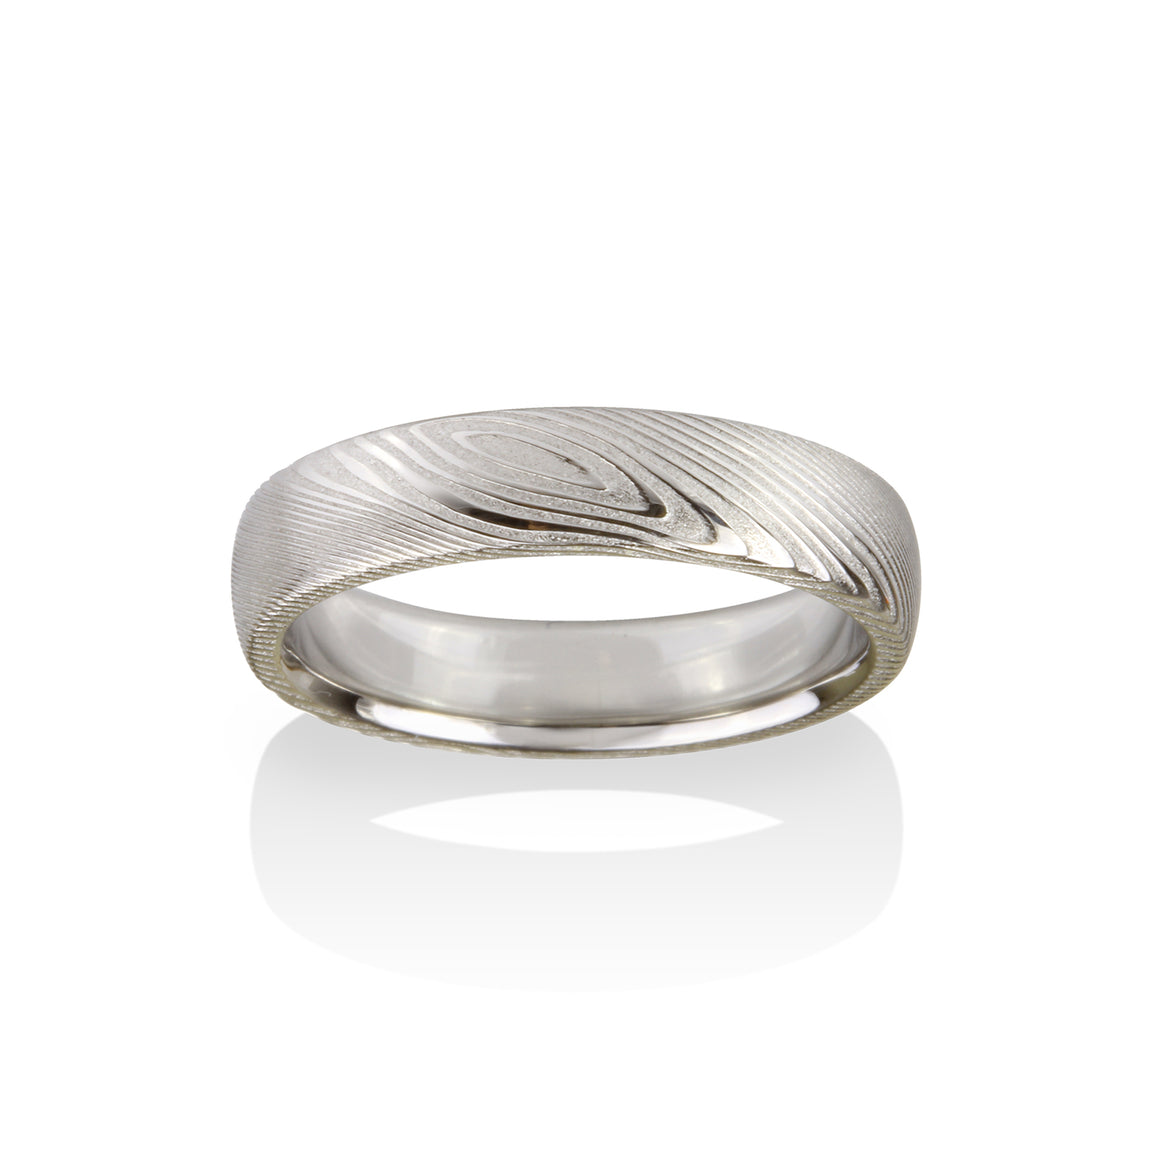 Pathways Damascus Steel Ring by Chris Ploof - Talisman Collection Fine Jewelers